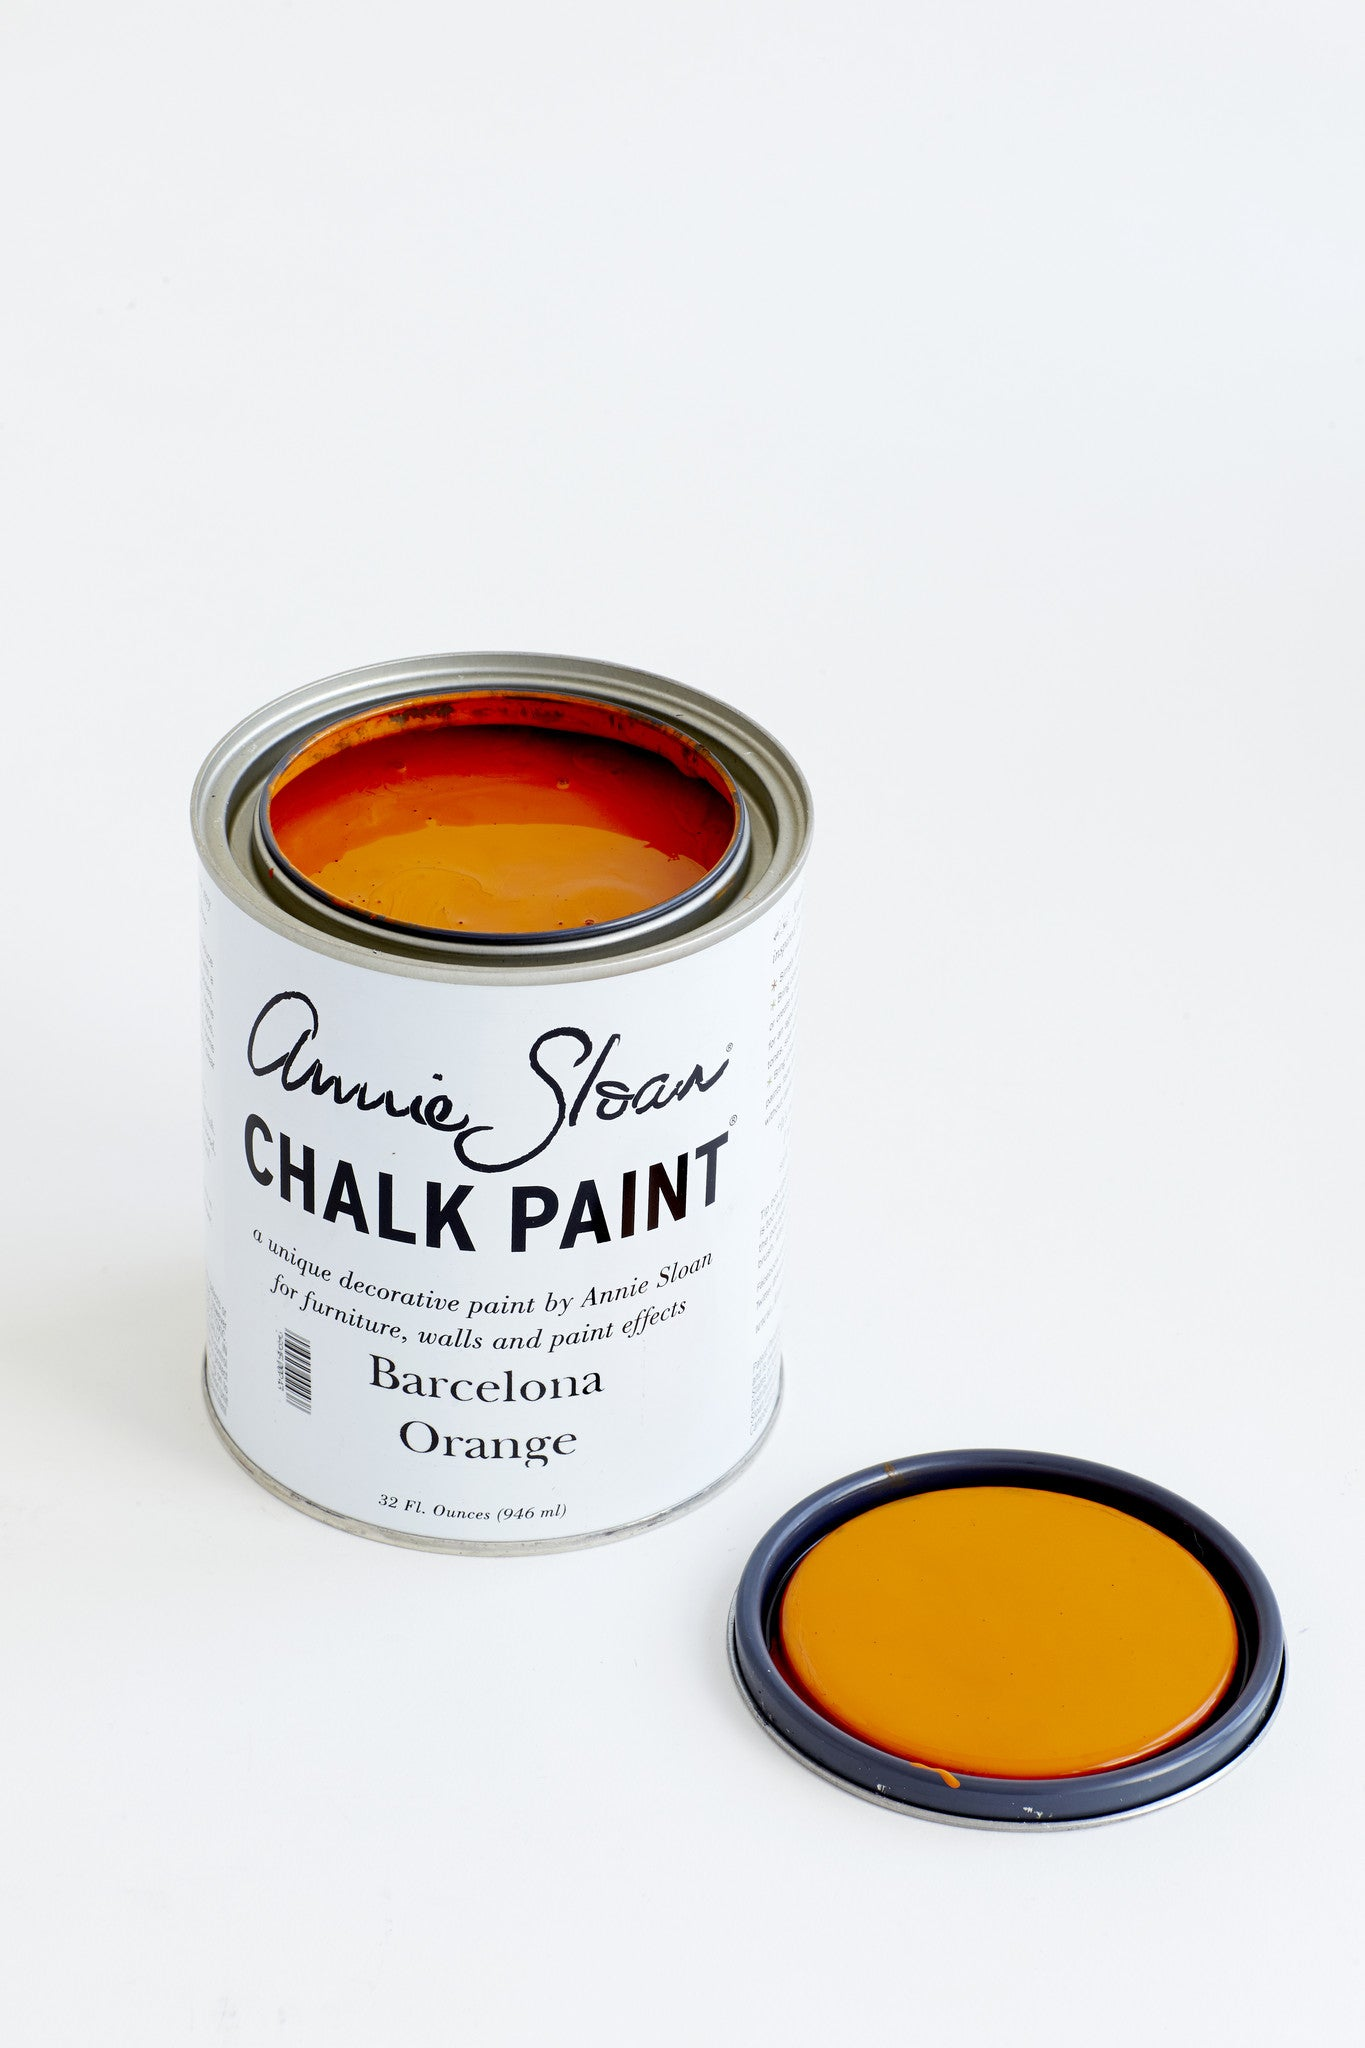 Barcelona Orange Chalk Paint® decorative paint by Annie Sloan- U.S. Quart - the Bower decor market  at The Highlands Wheeling WV